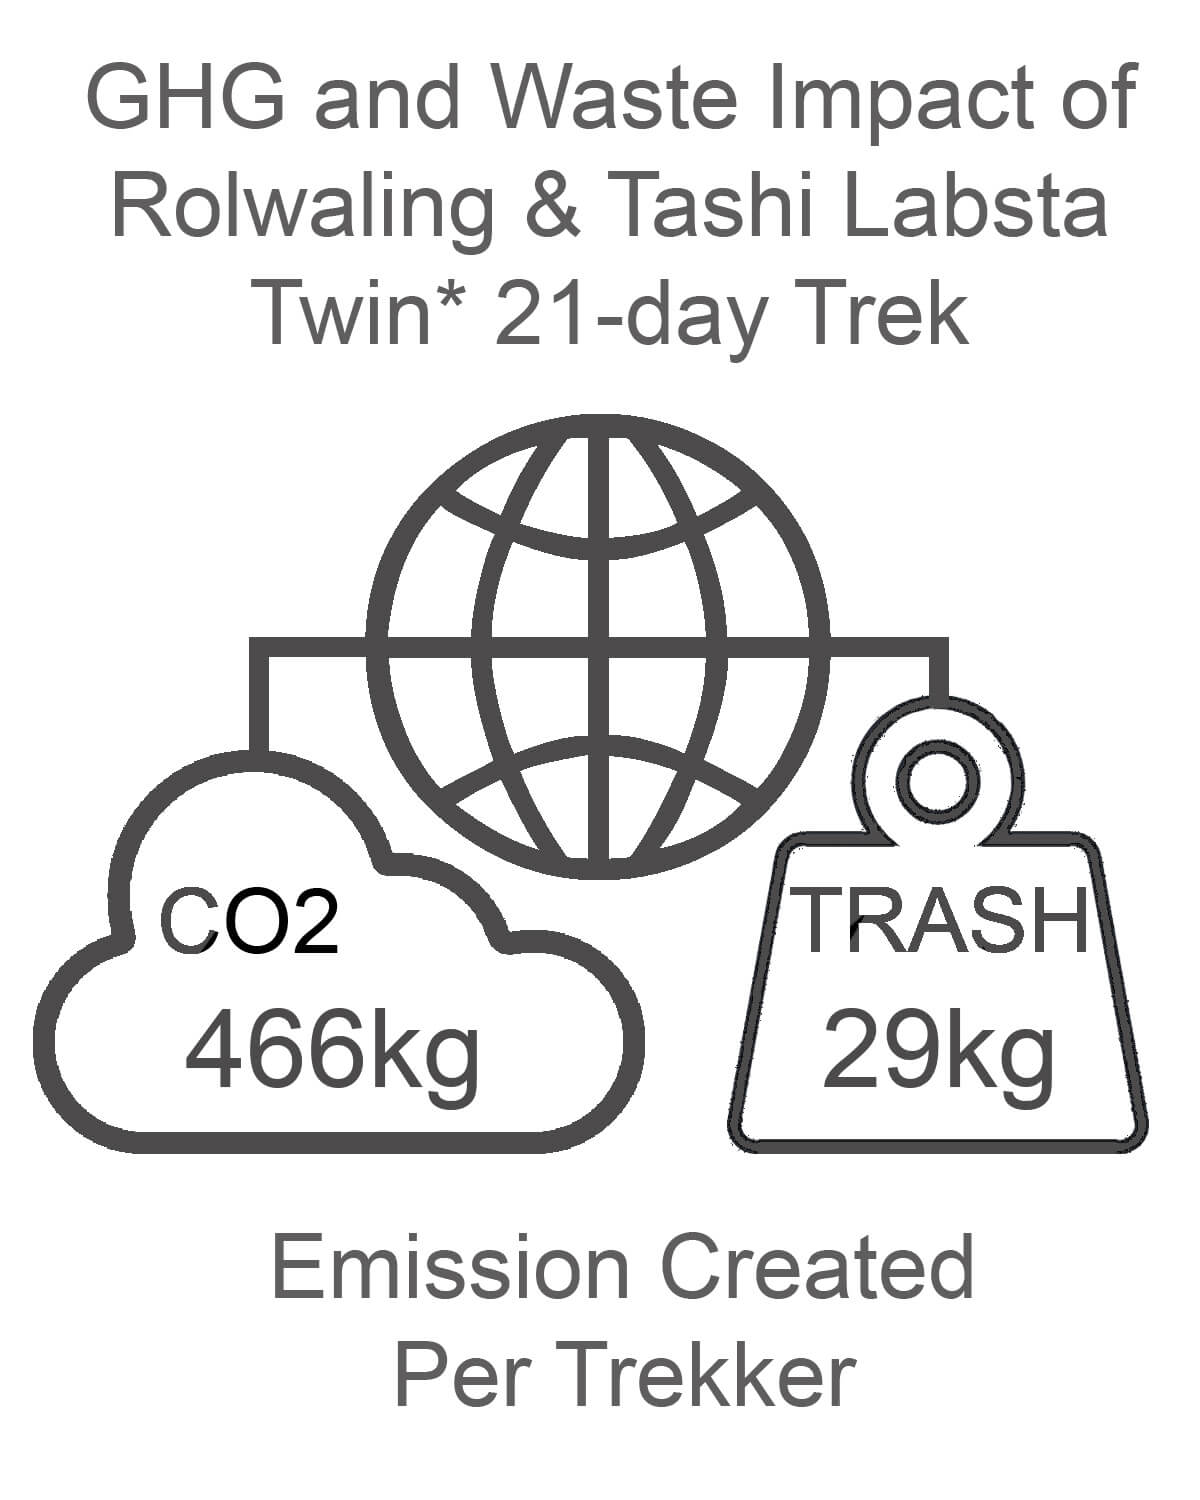 Rolwaling and Tashi Labsta GHG and Waste Impact TWIN